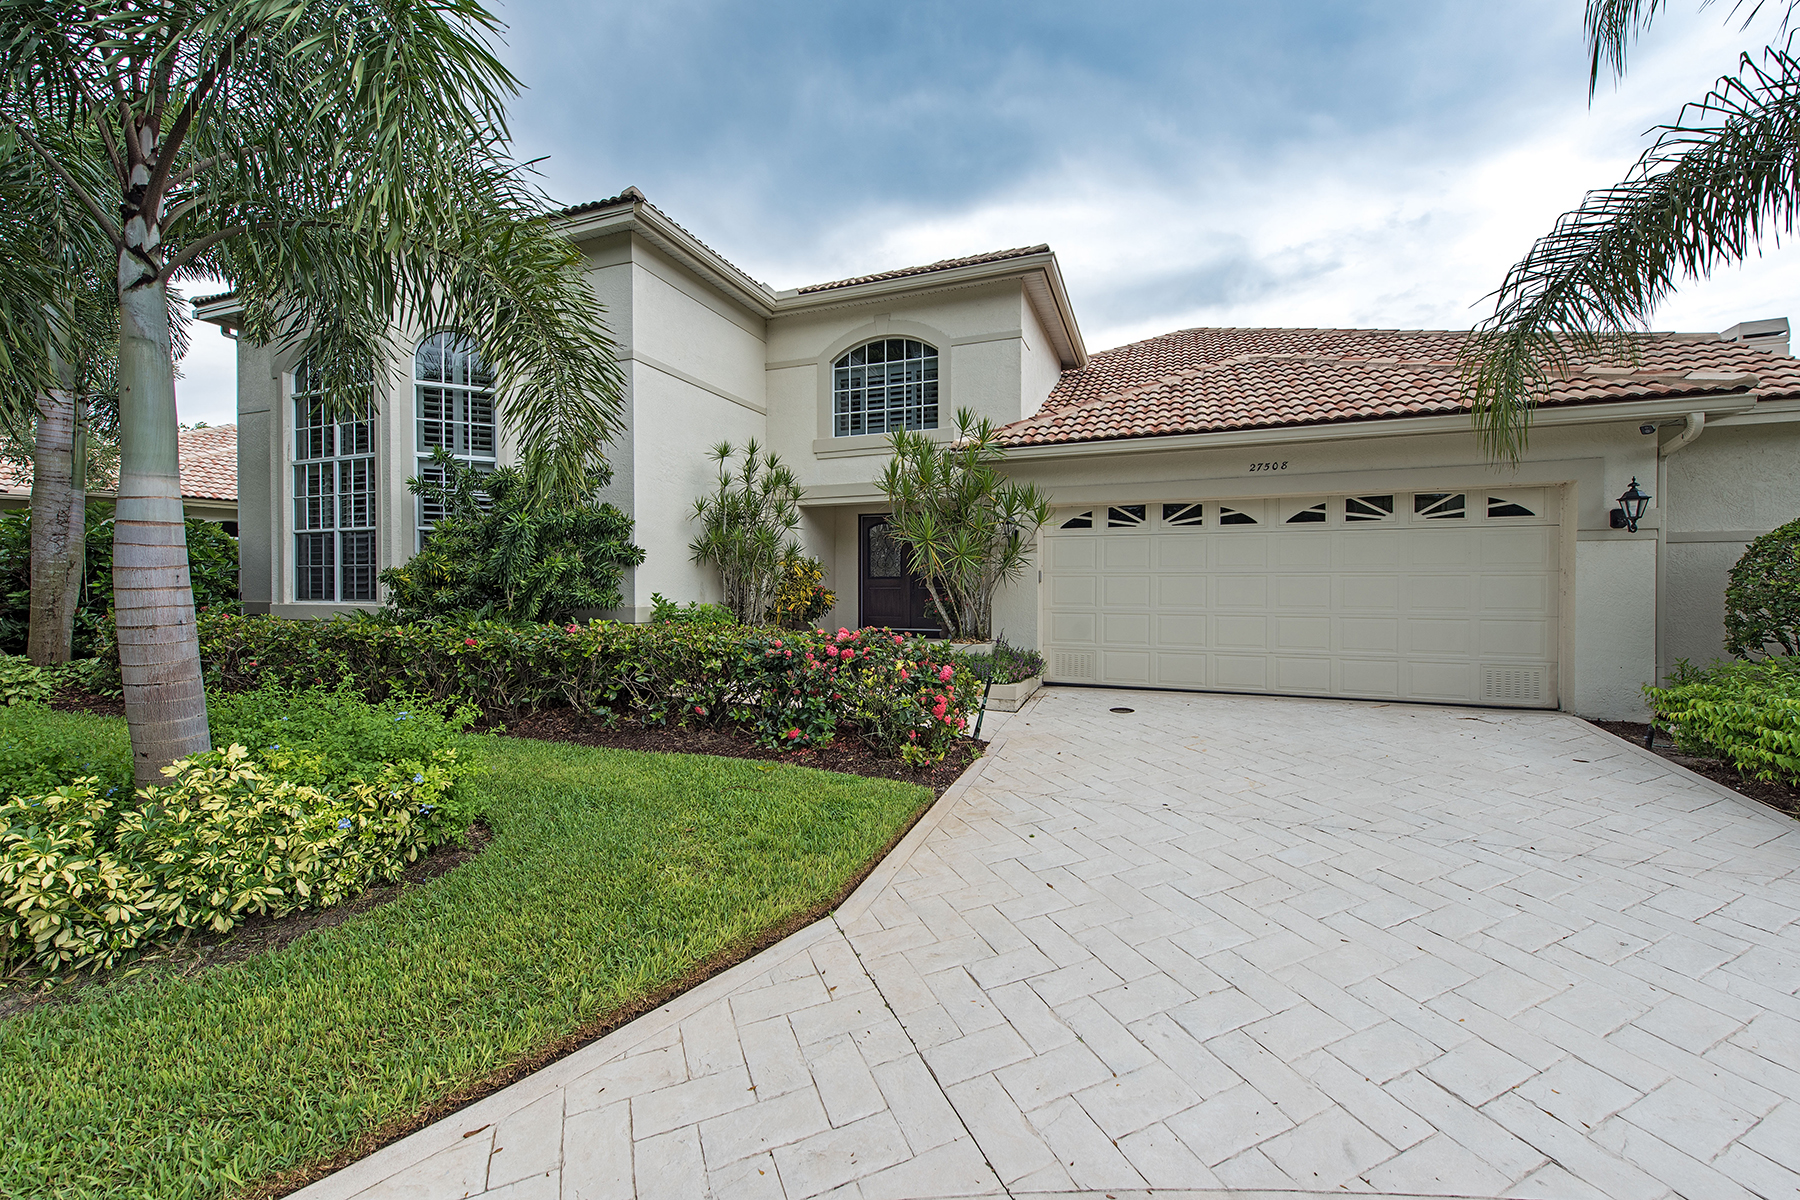 Maison unifamiliale pour l Vente à BONITA BAY - THE ANCHORAGE 27508 Riverbank Dr Bonita Springs, Florida, 34134 États-Unis